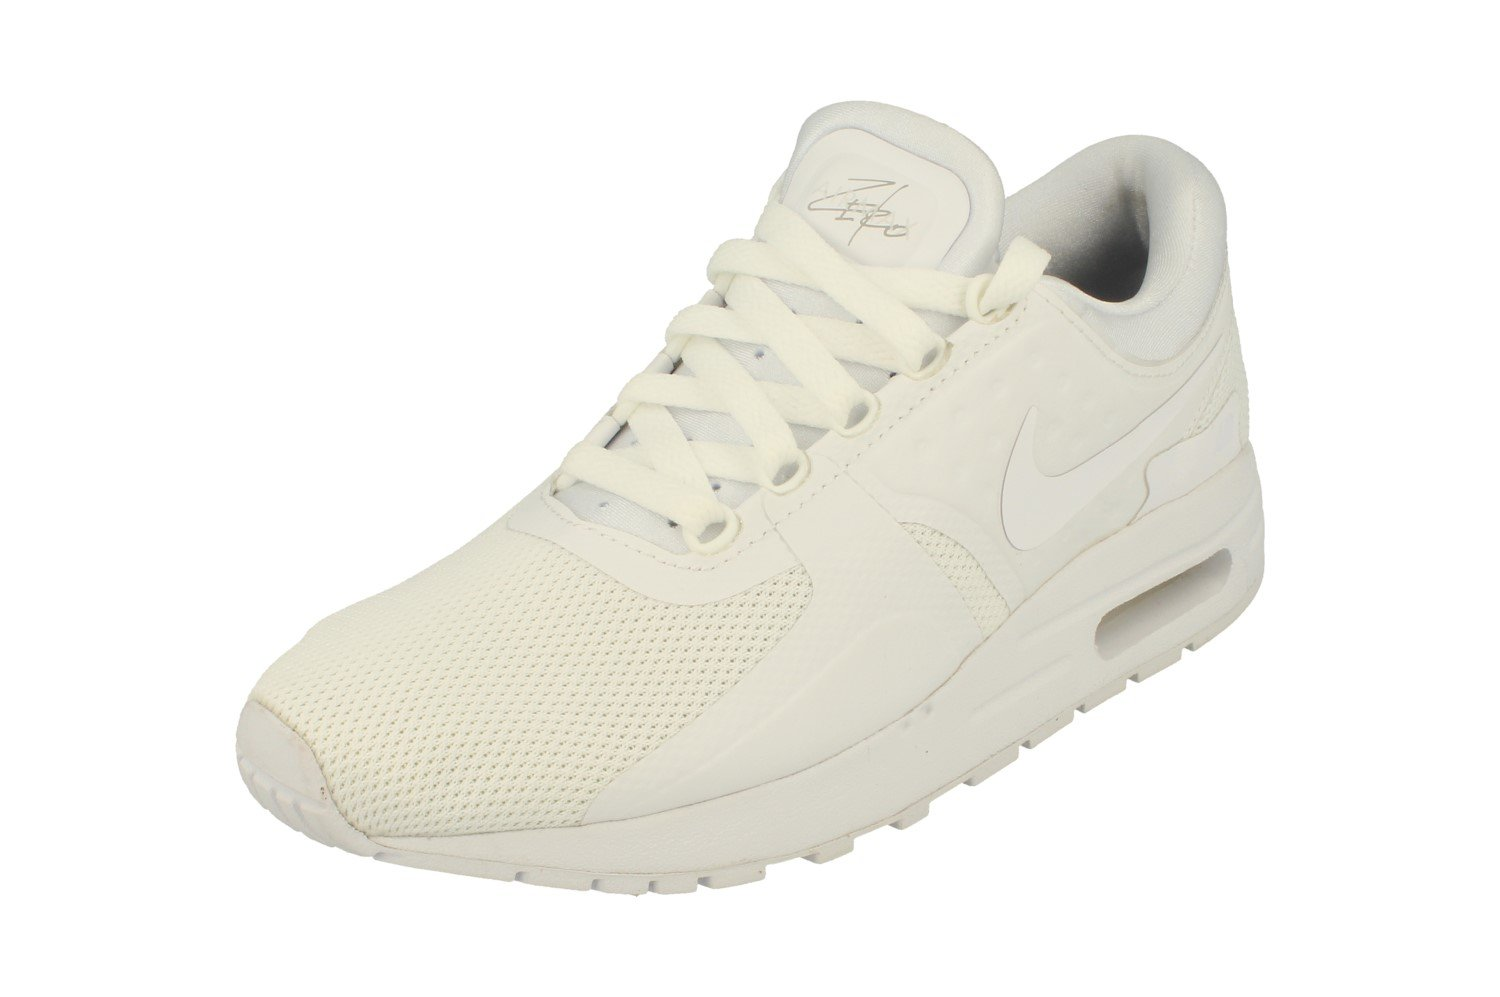 Nike Air Max Zero Essential GS Running Trainers 881224 Sneakers Shoes (UK 3 US 3.5Y EU 35.5, White Wolf Grey 100)